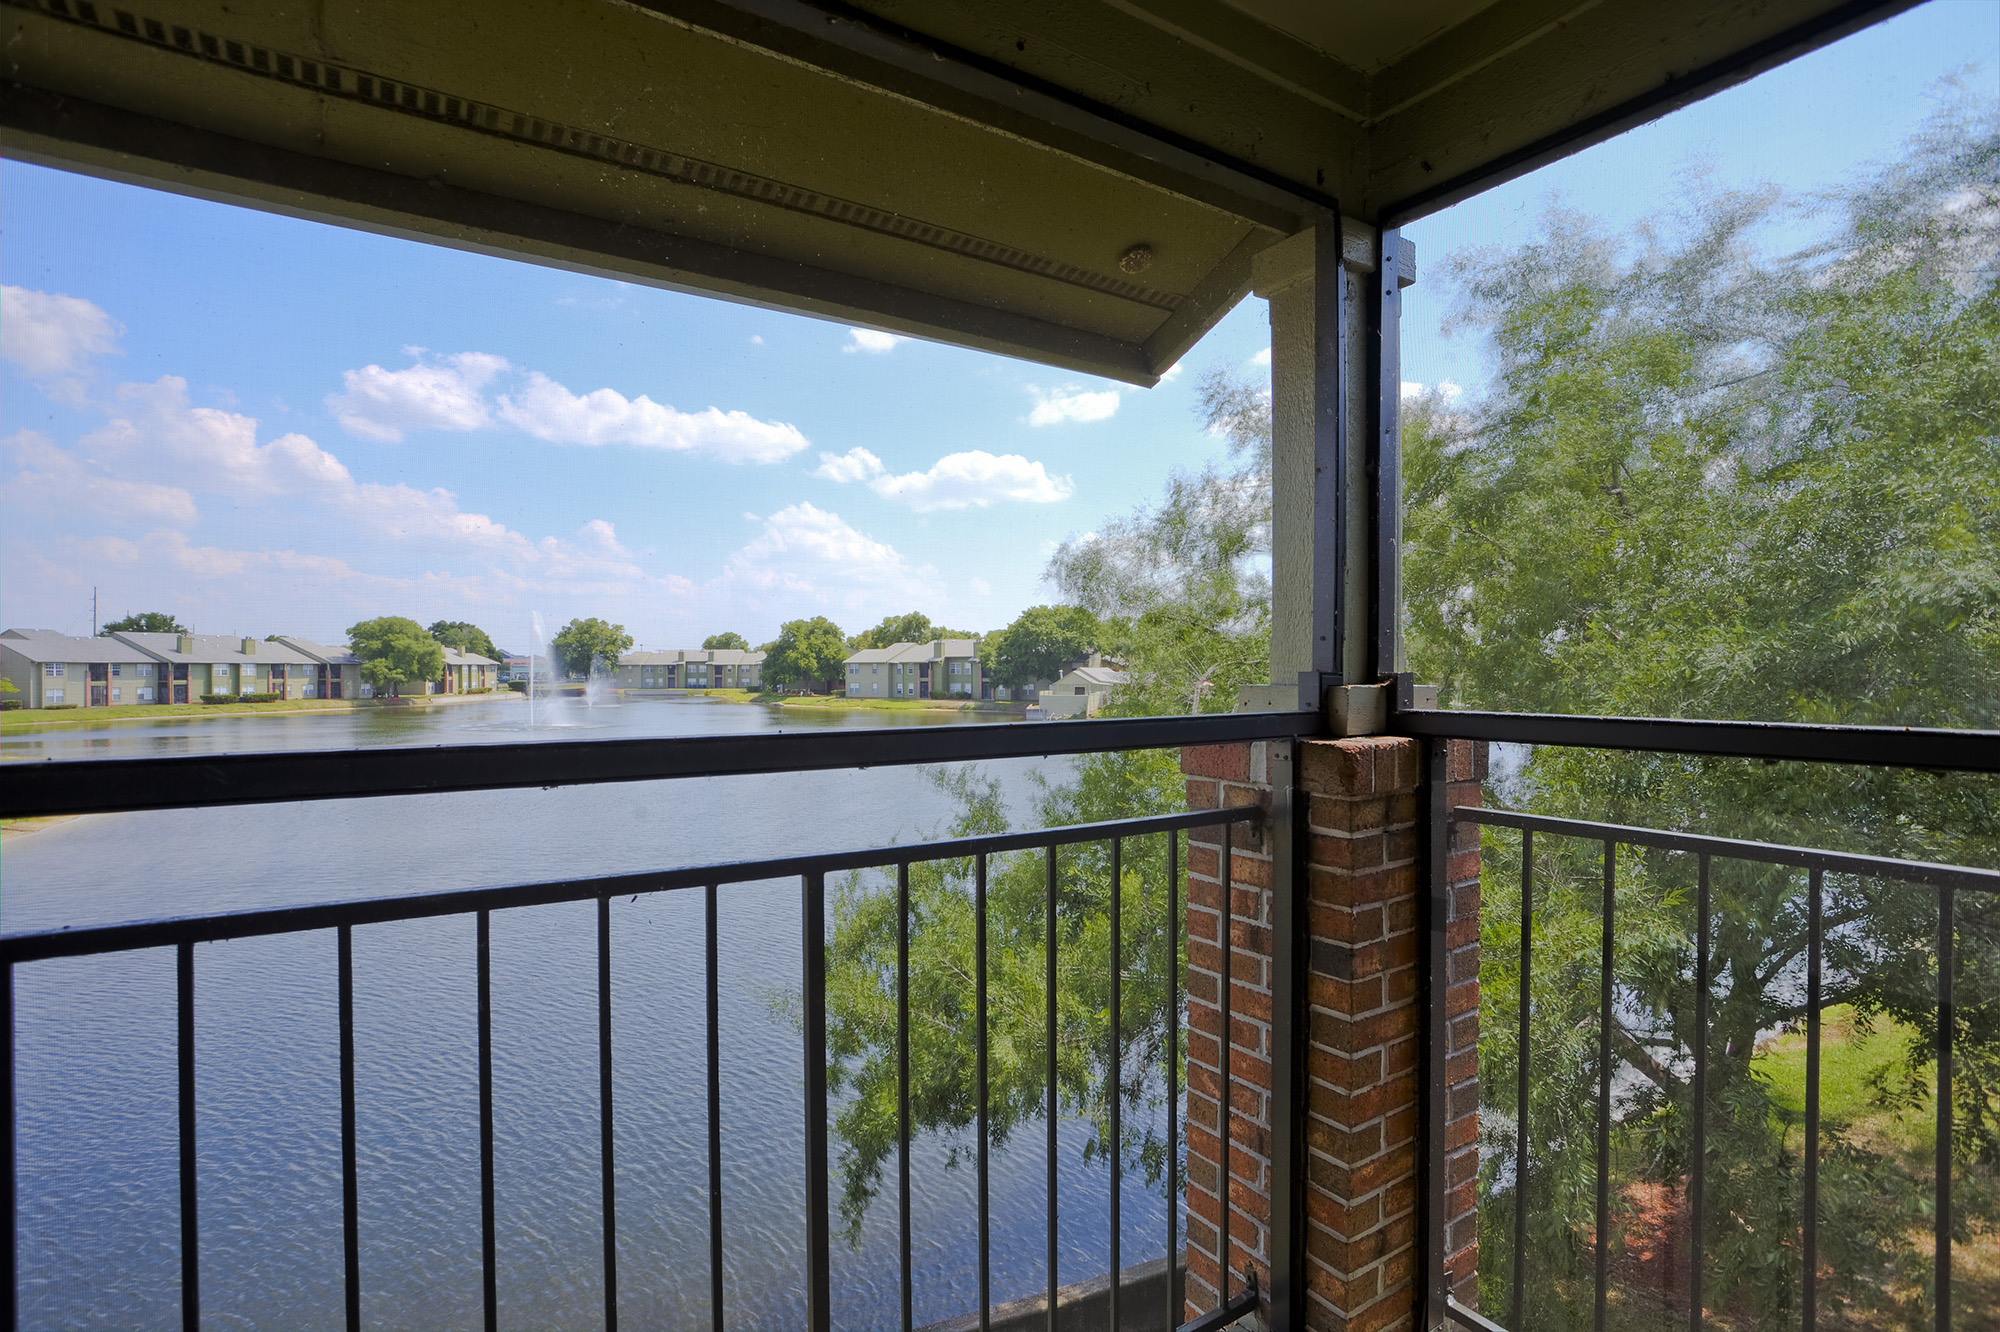 CharlestonLandings-Rental-Apartment-Brandon-Tampa-Florida-Pool-Bedrooms-Exterior3.jpg